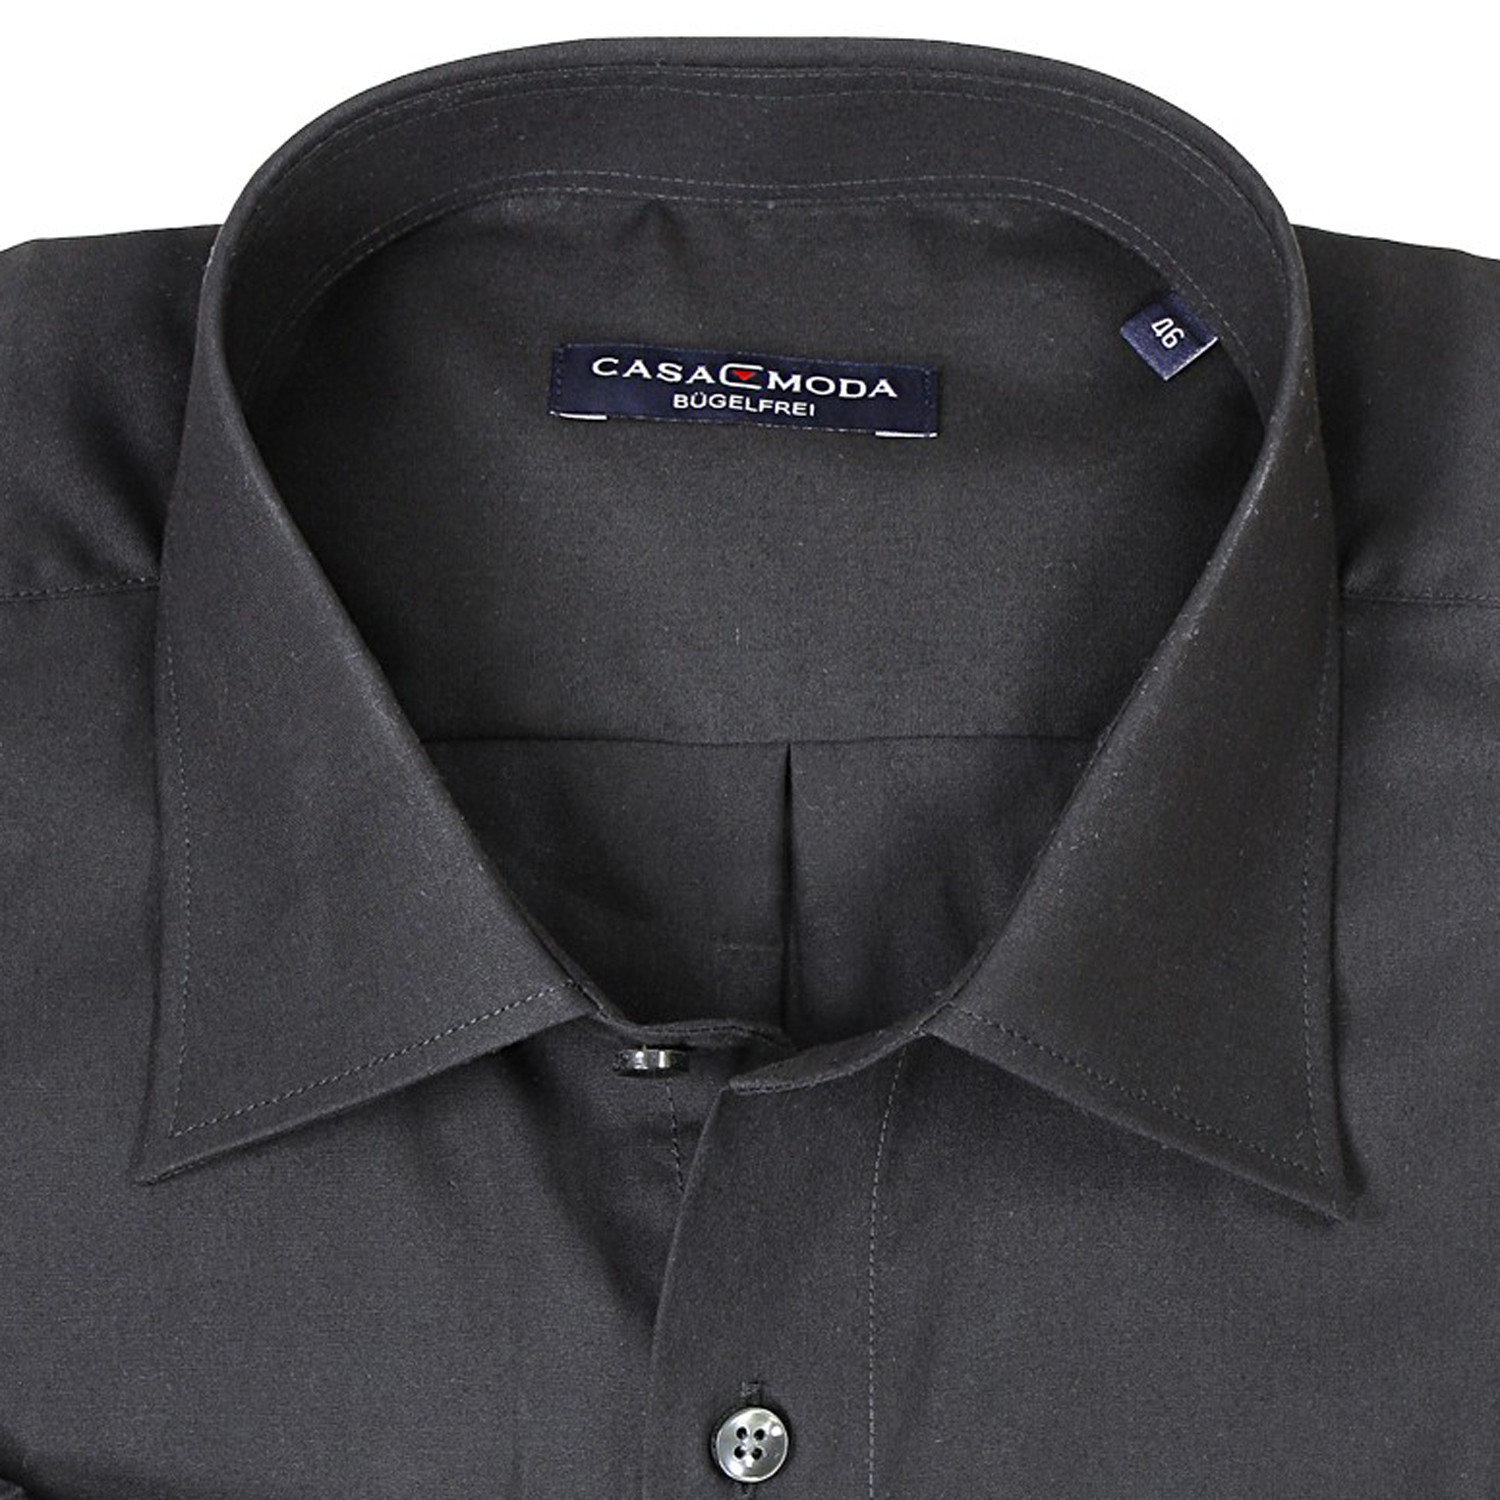 Detail Image to Dark gray shirt by Casamoda in plus size up to 7XL